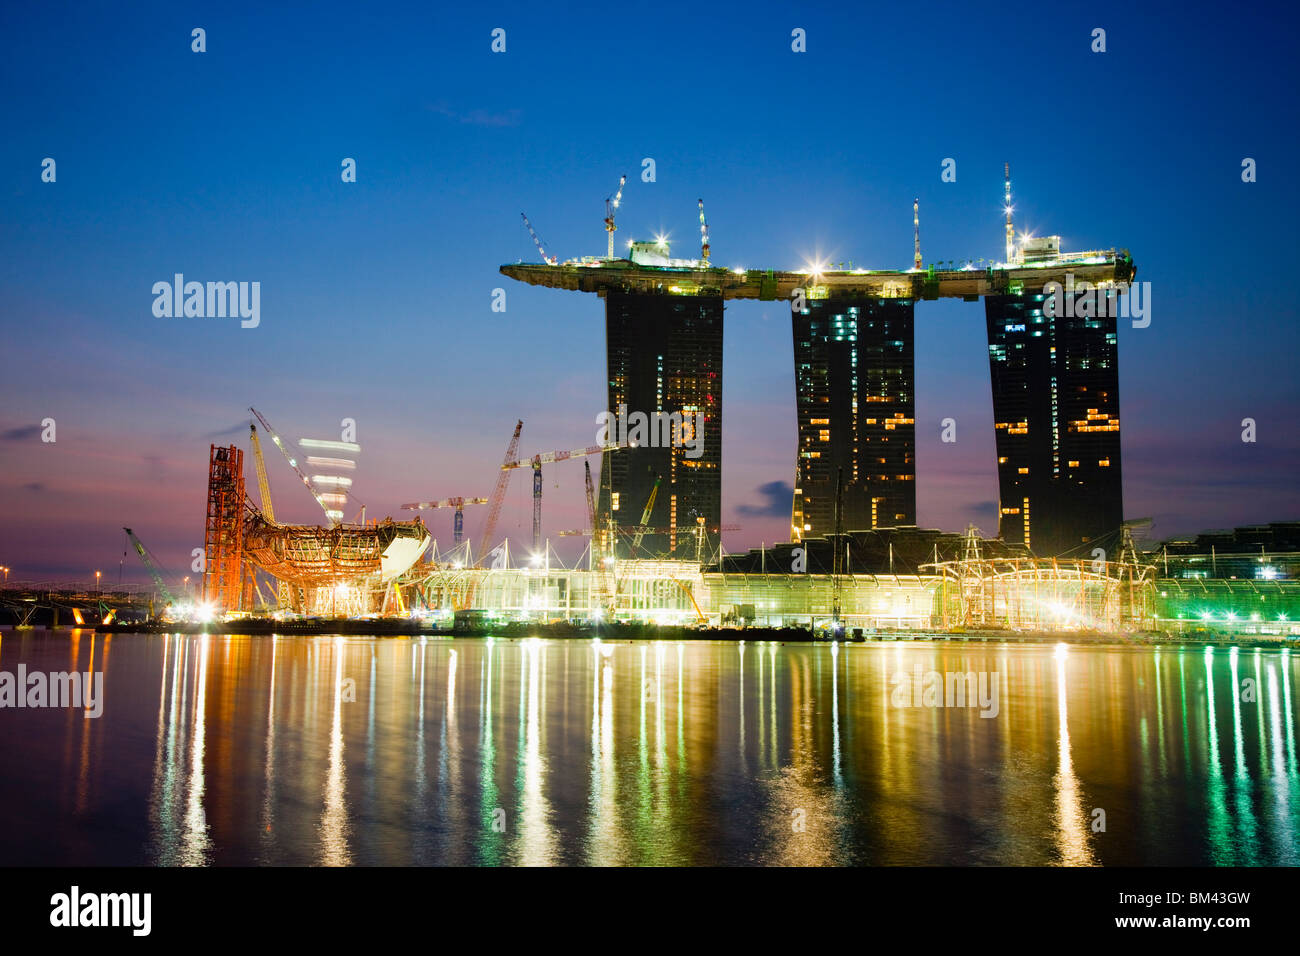 The Marina Bay Sands Hotel and Casino under construction on the Marina Bay waterfront, Singapore - Stock Image